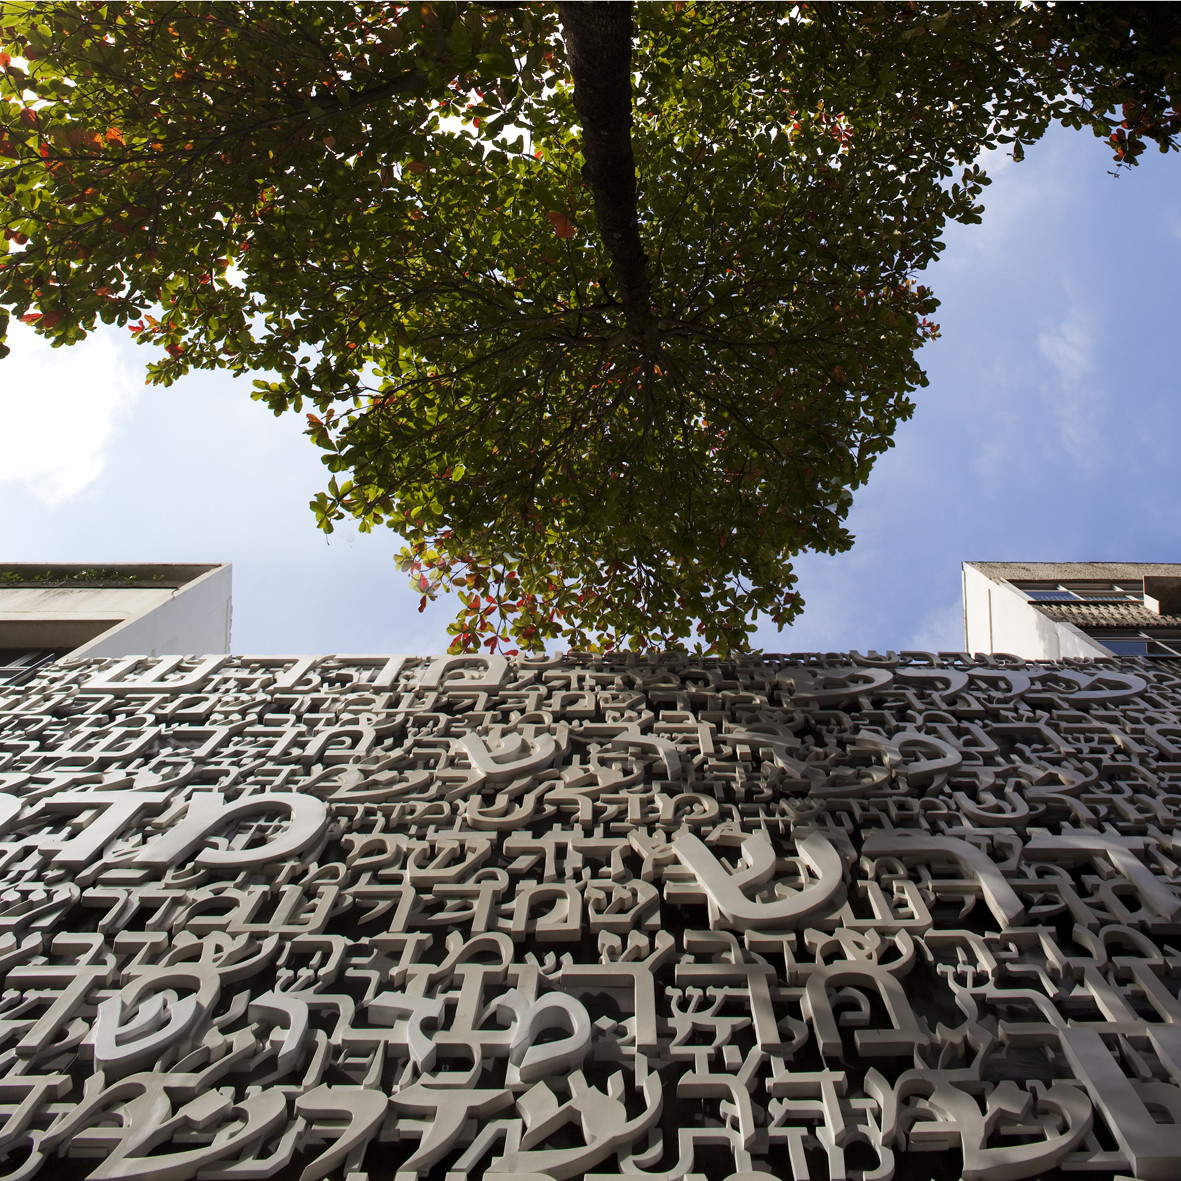 Upward view of the facade with its hebrew characters